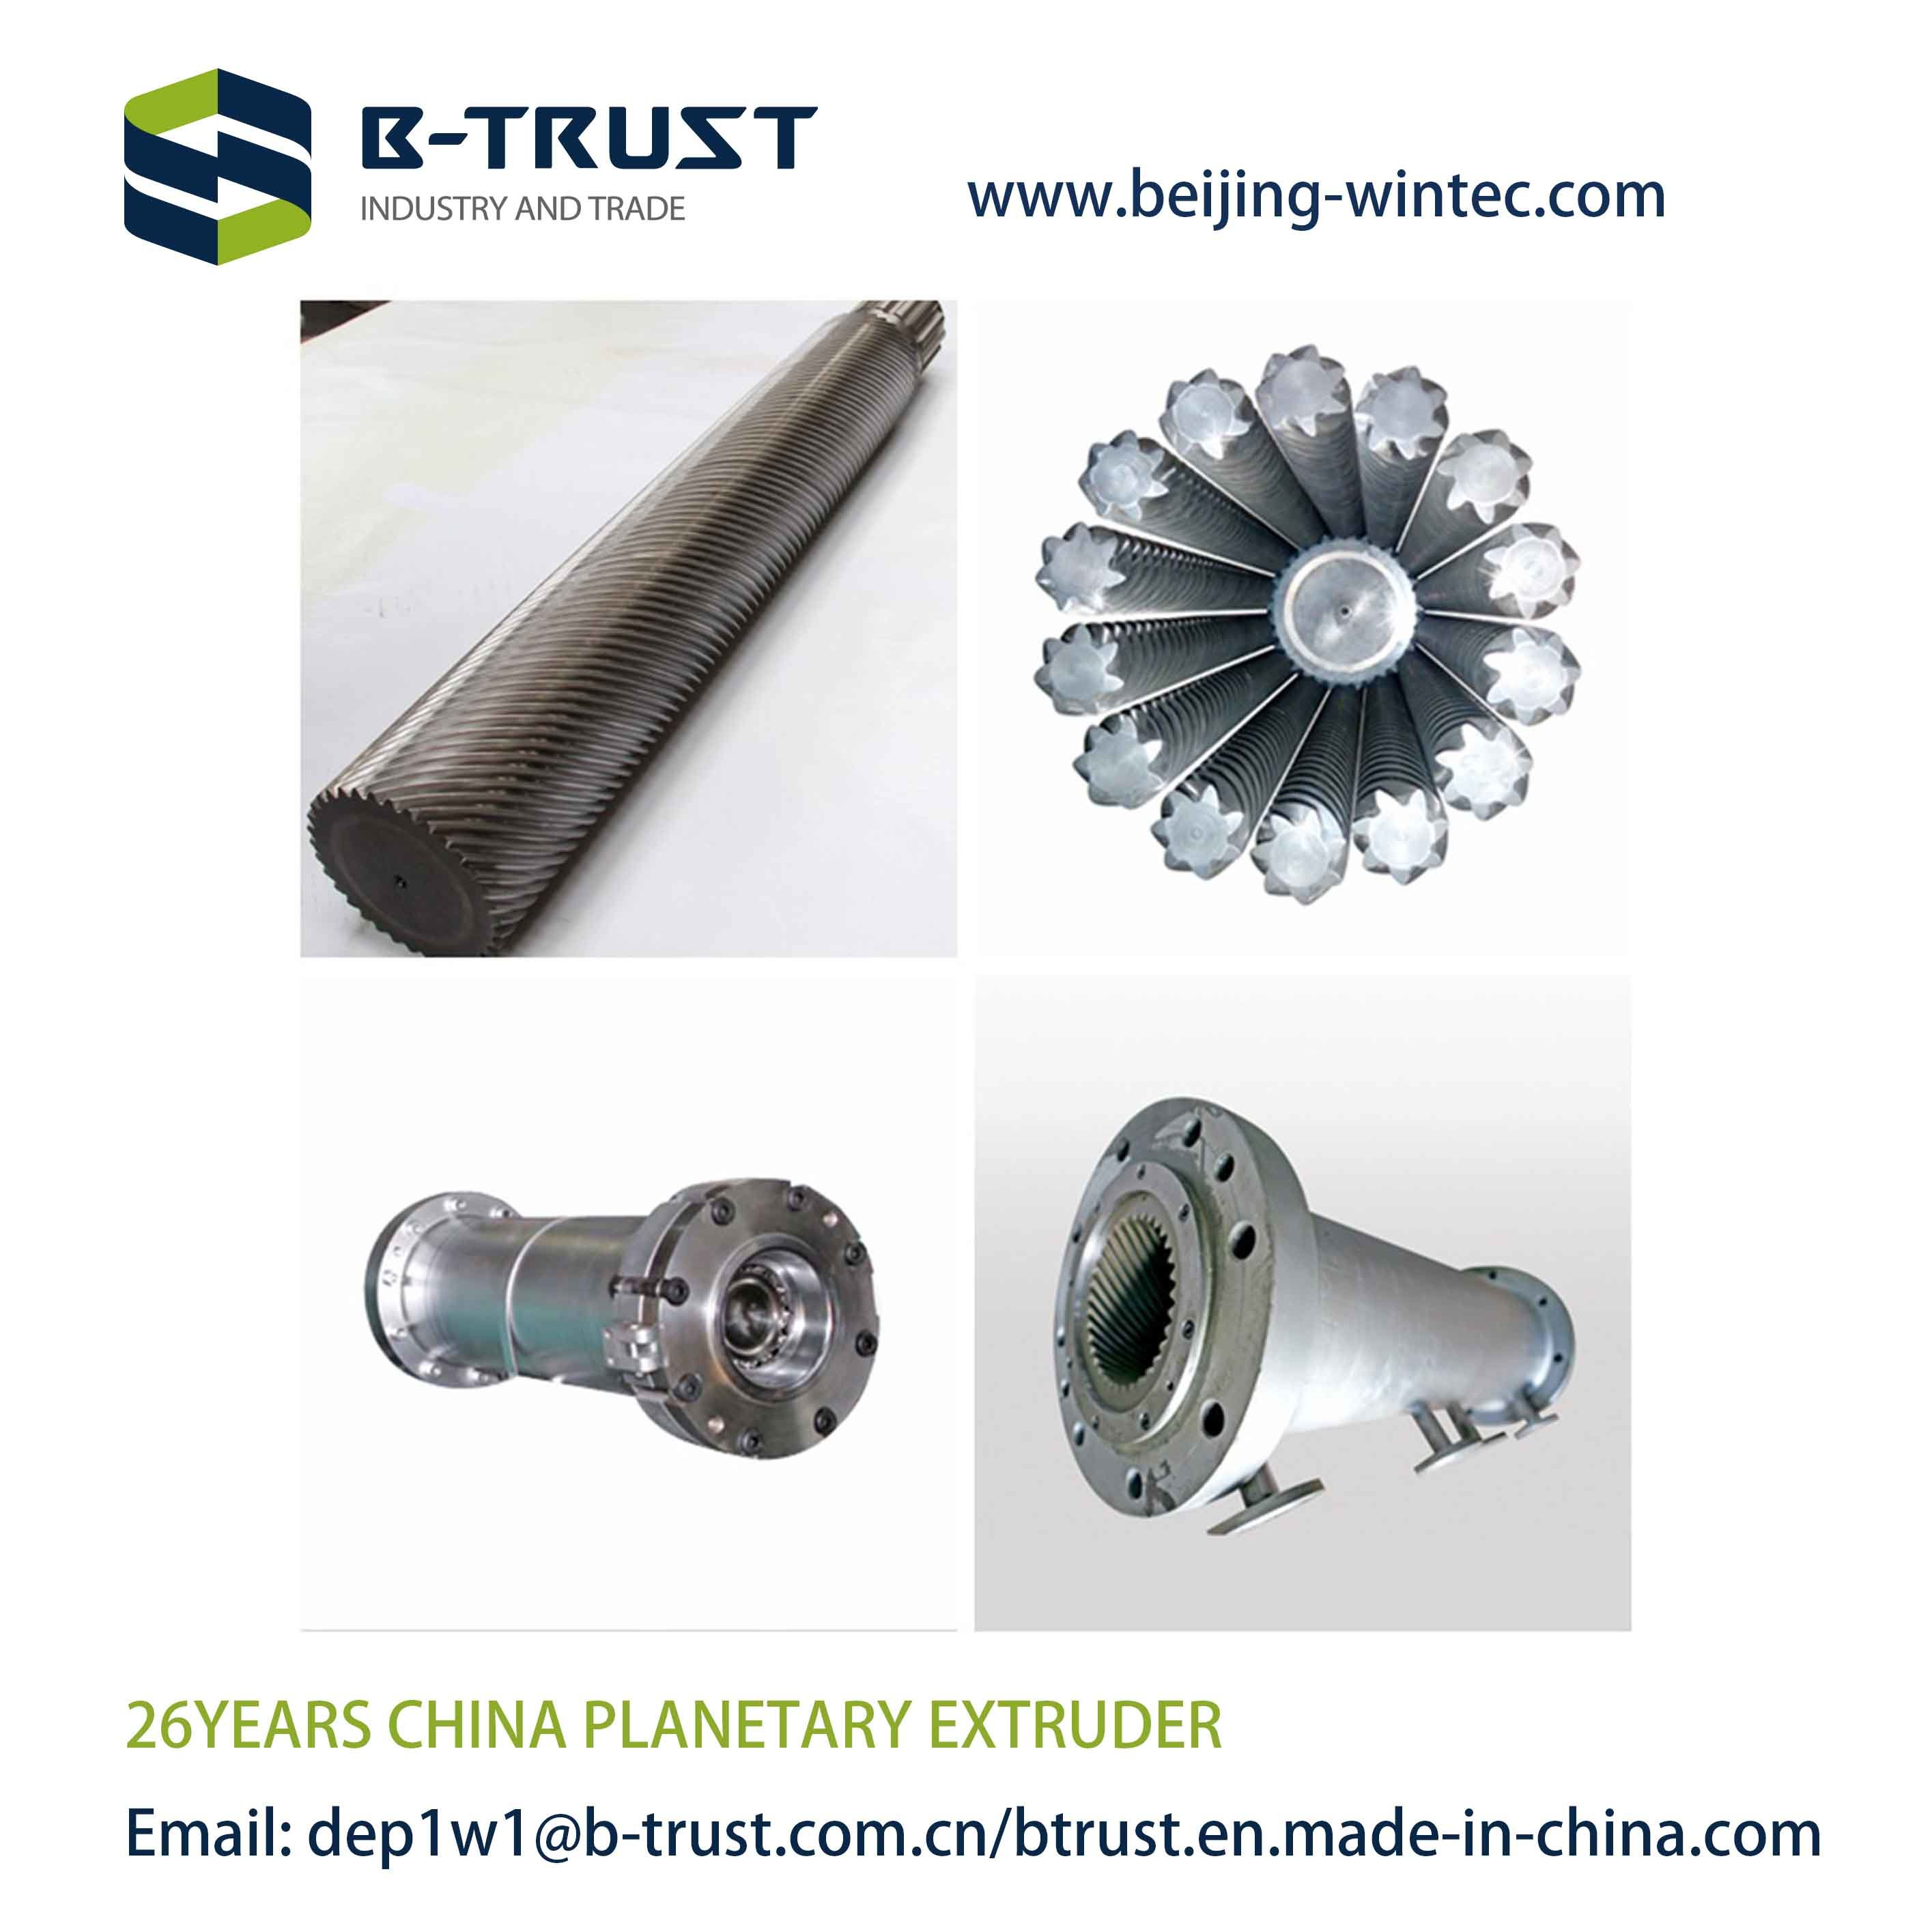 Planetary Extruder Spare Parts for German Extruder with Durable Planetary Screws